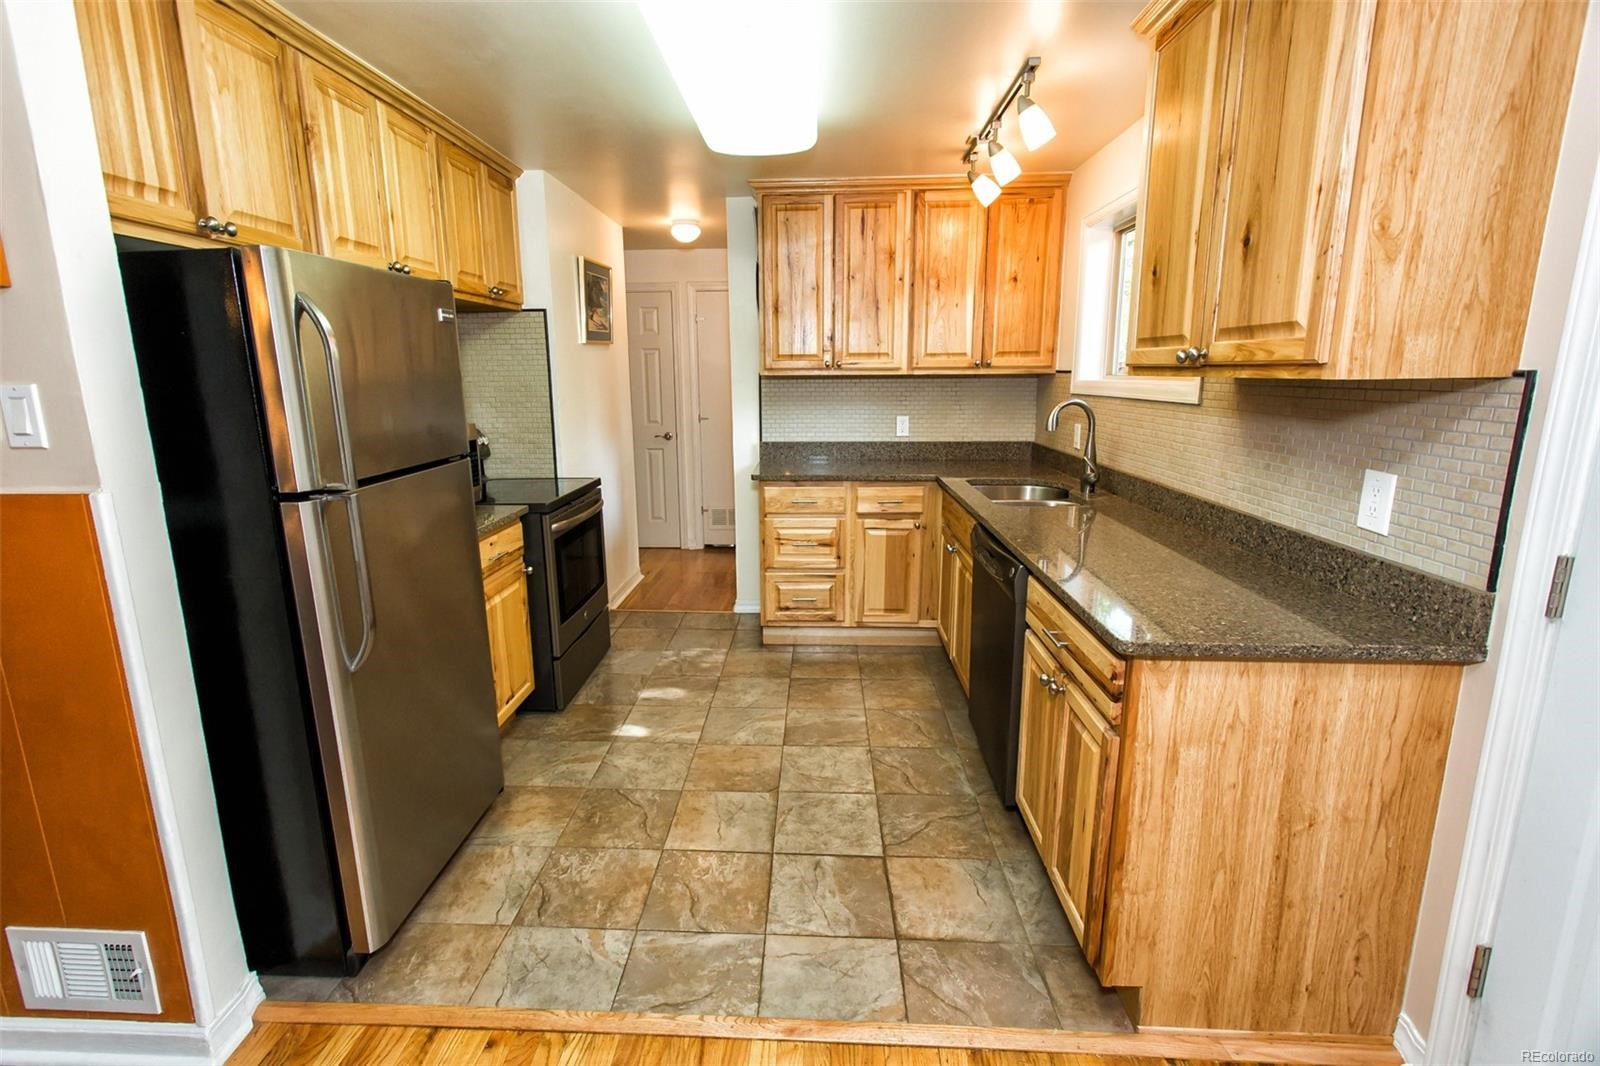 MLS# 1591889 - 11 - 10120 W 8th Place, Lakewood, CO 80215